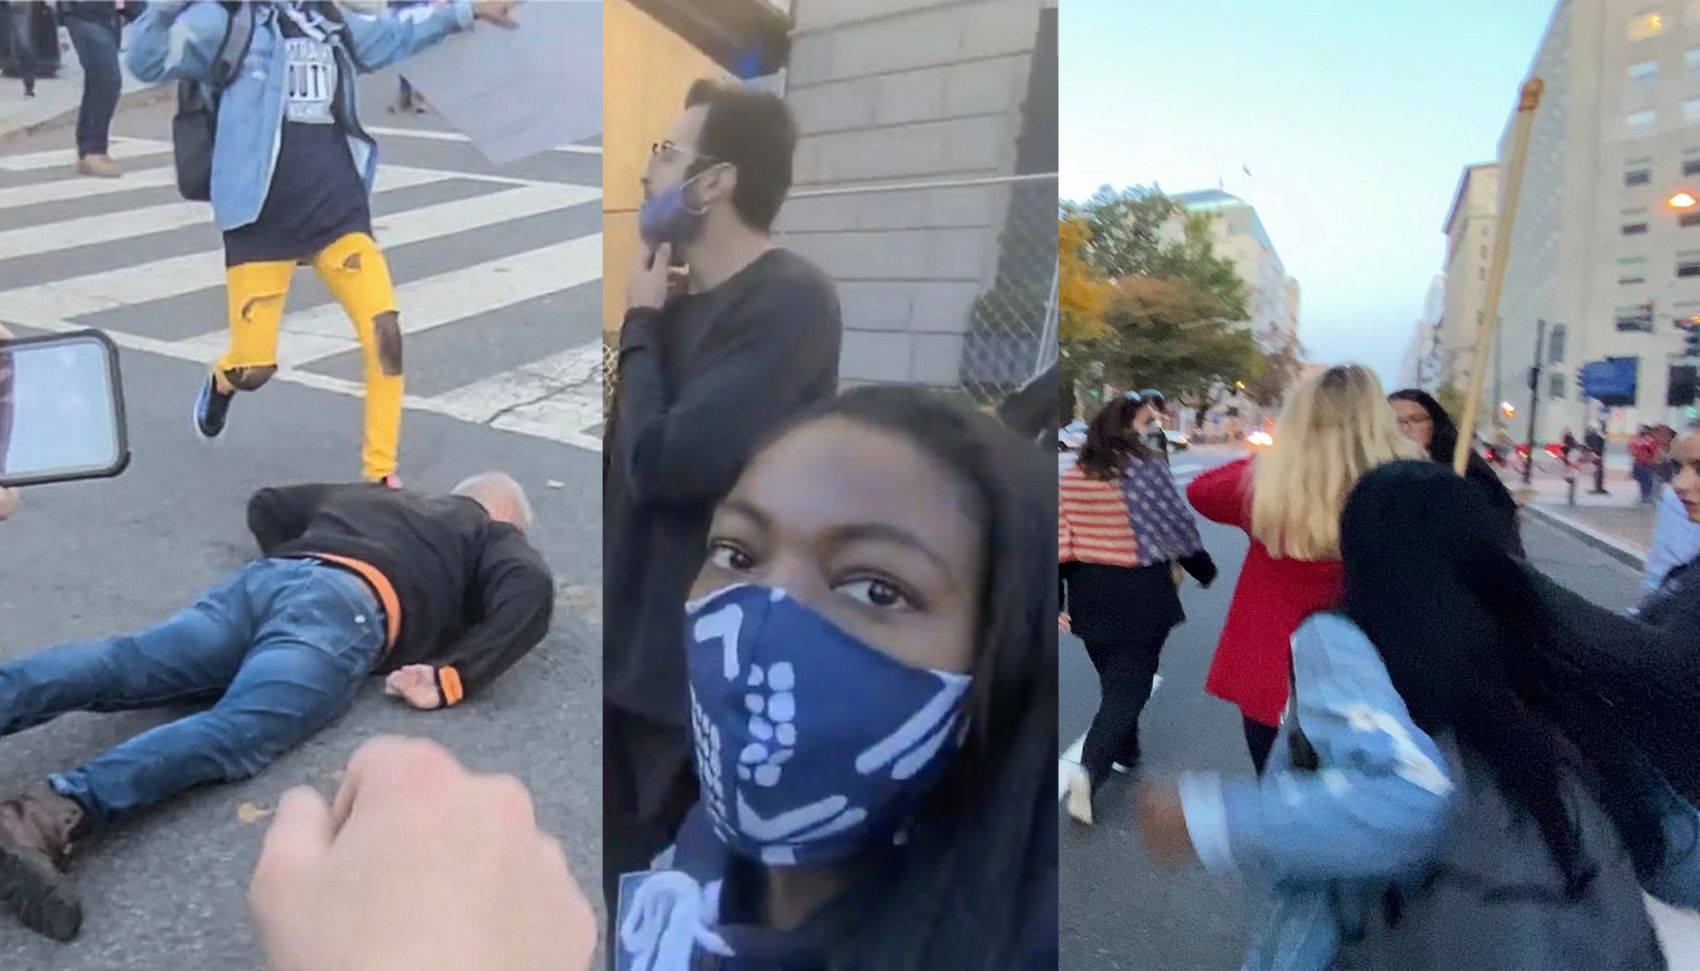 EXCLUSIVE: Suspect filmed beating Trump supporters in DC is a journalism student